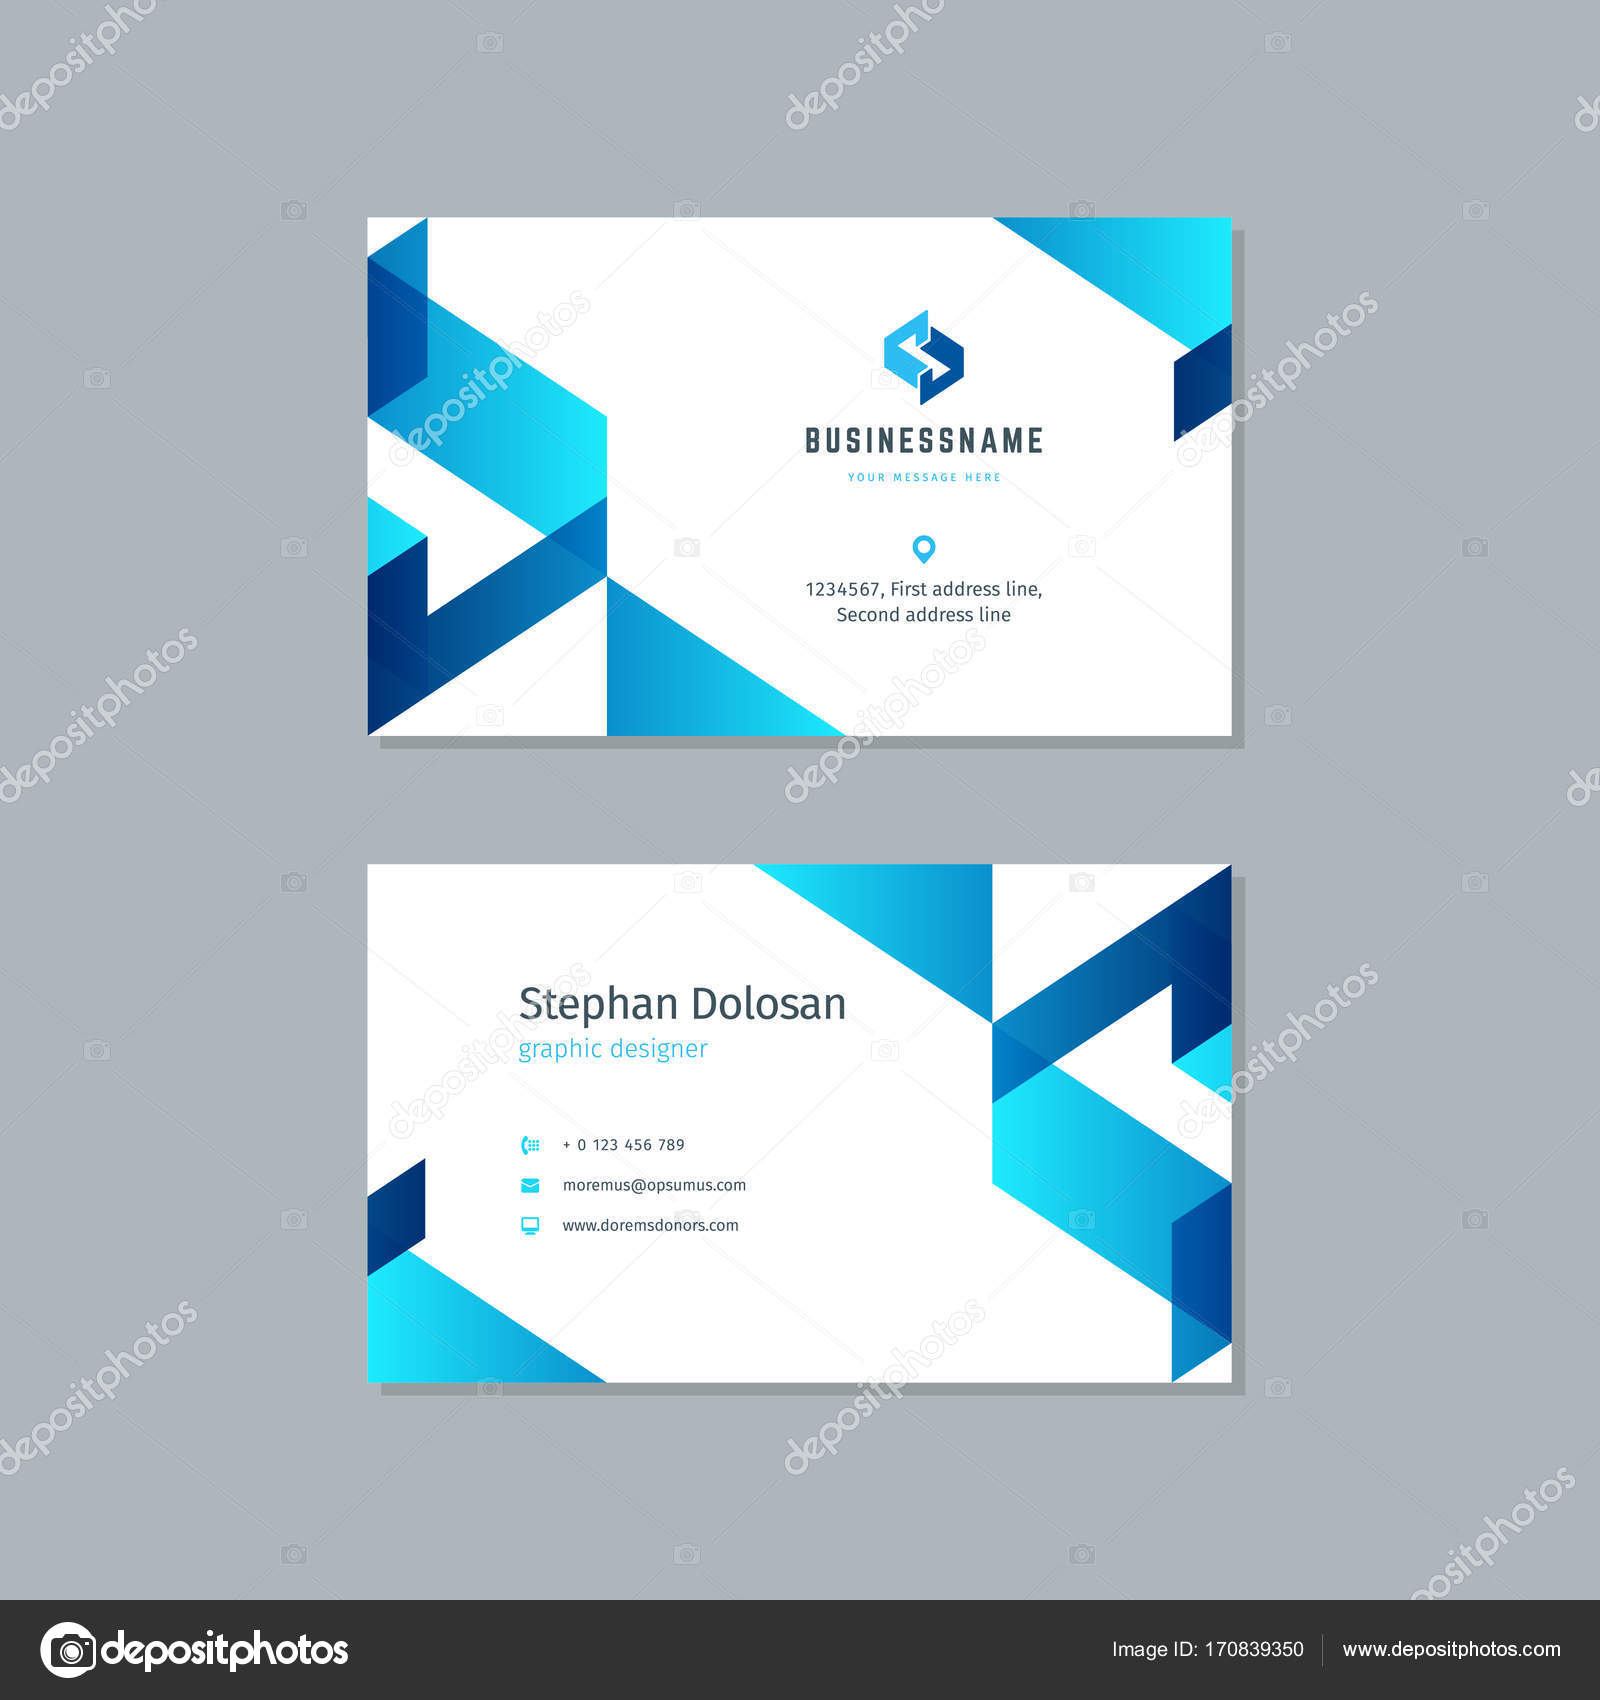 Business card design trendy blue colors template — Stock Vector ...